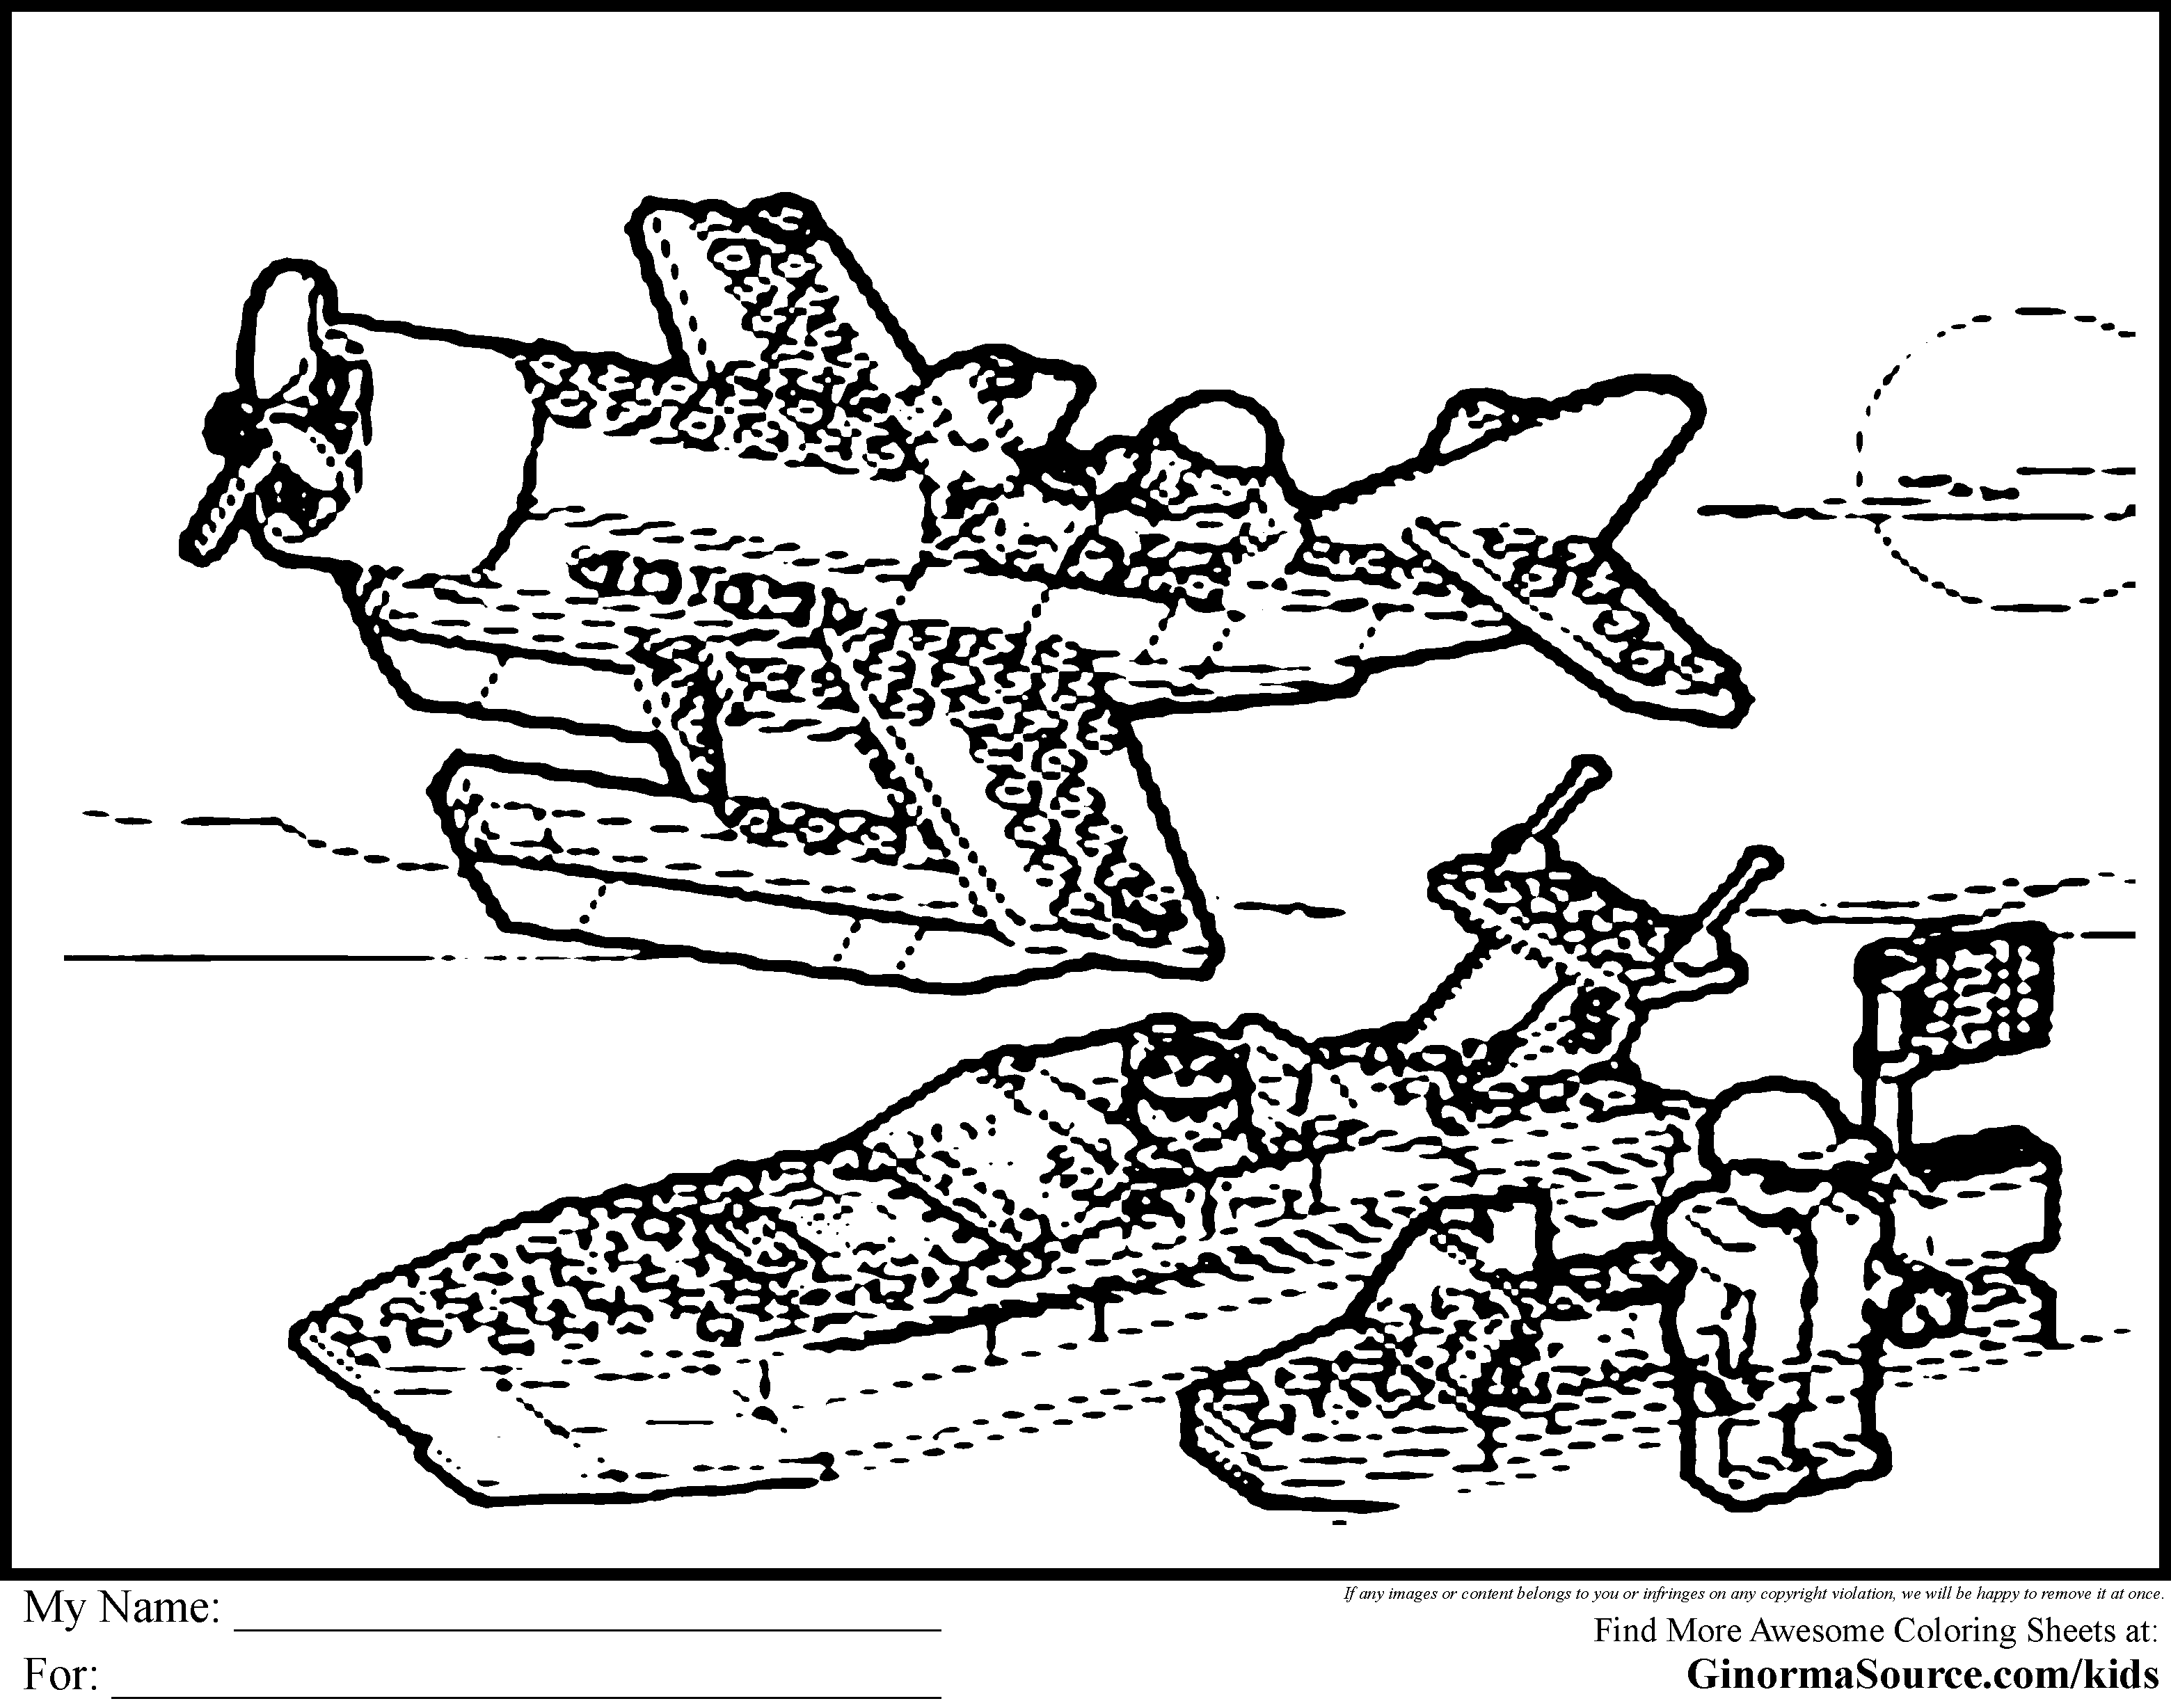 Lego coloring pages to print lego coloring pages lego darth - Lego Hobbit Coloring Pages Interesting Lego Star Wars Padme